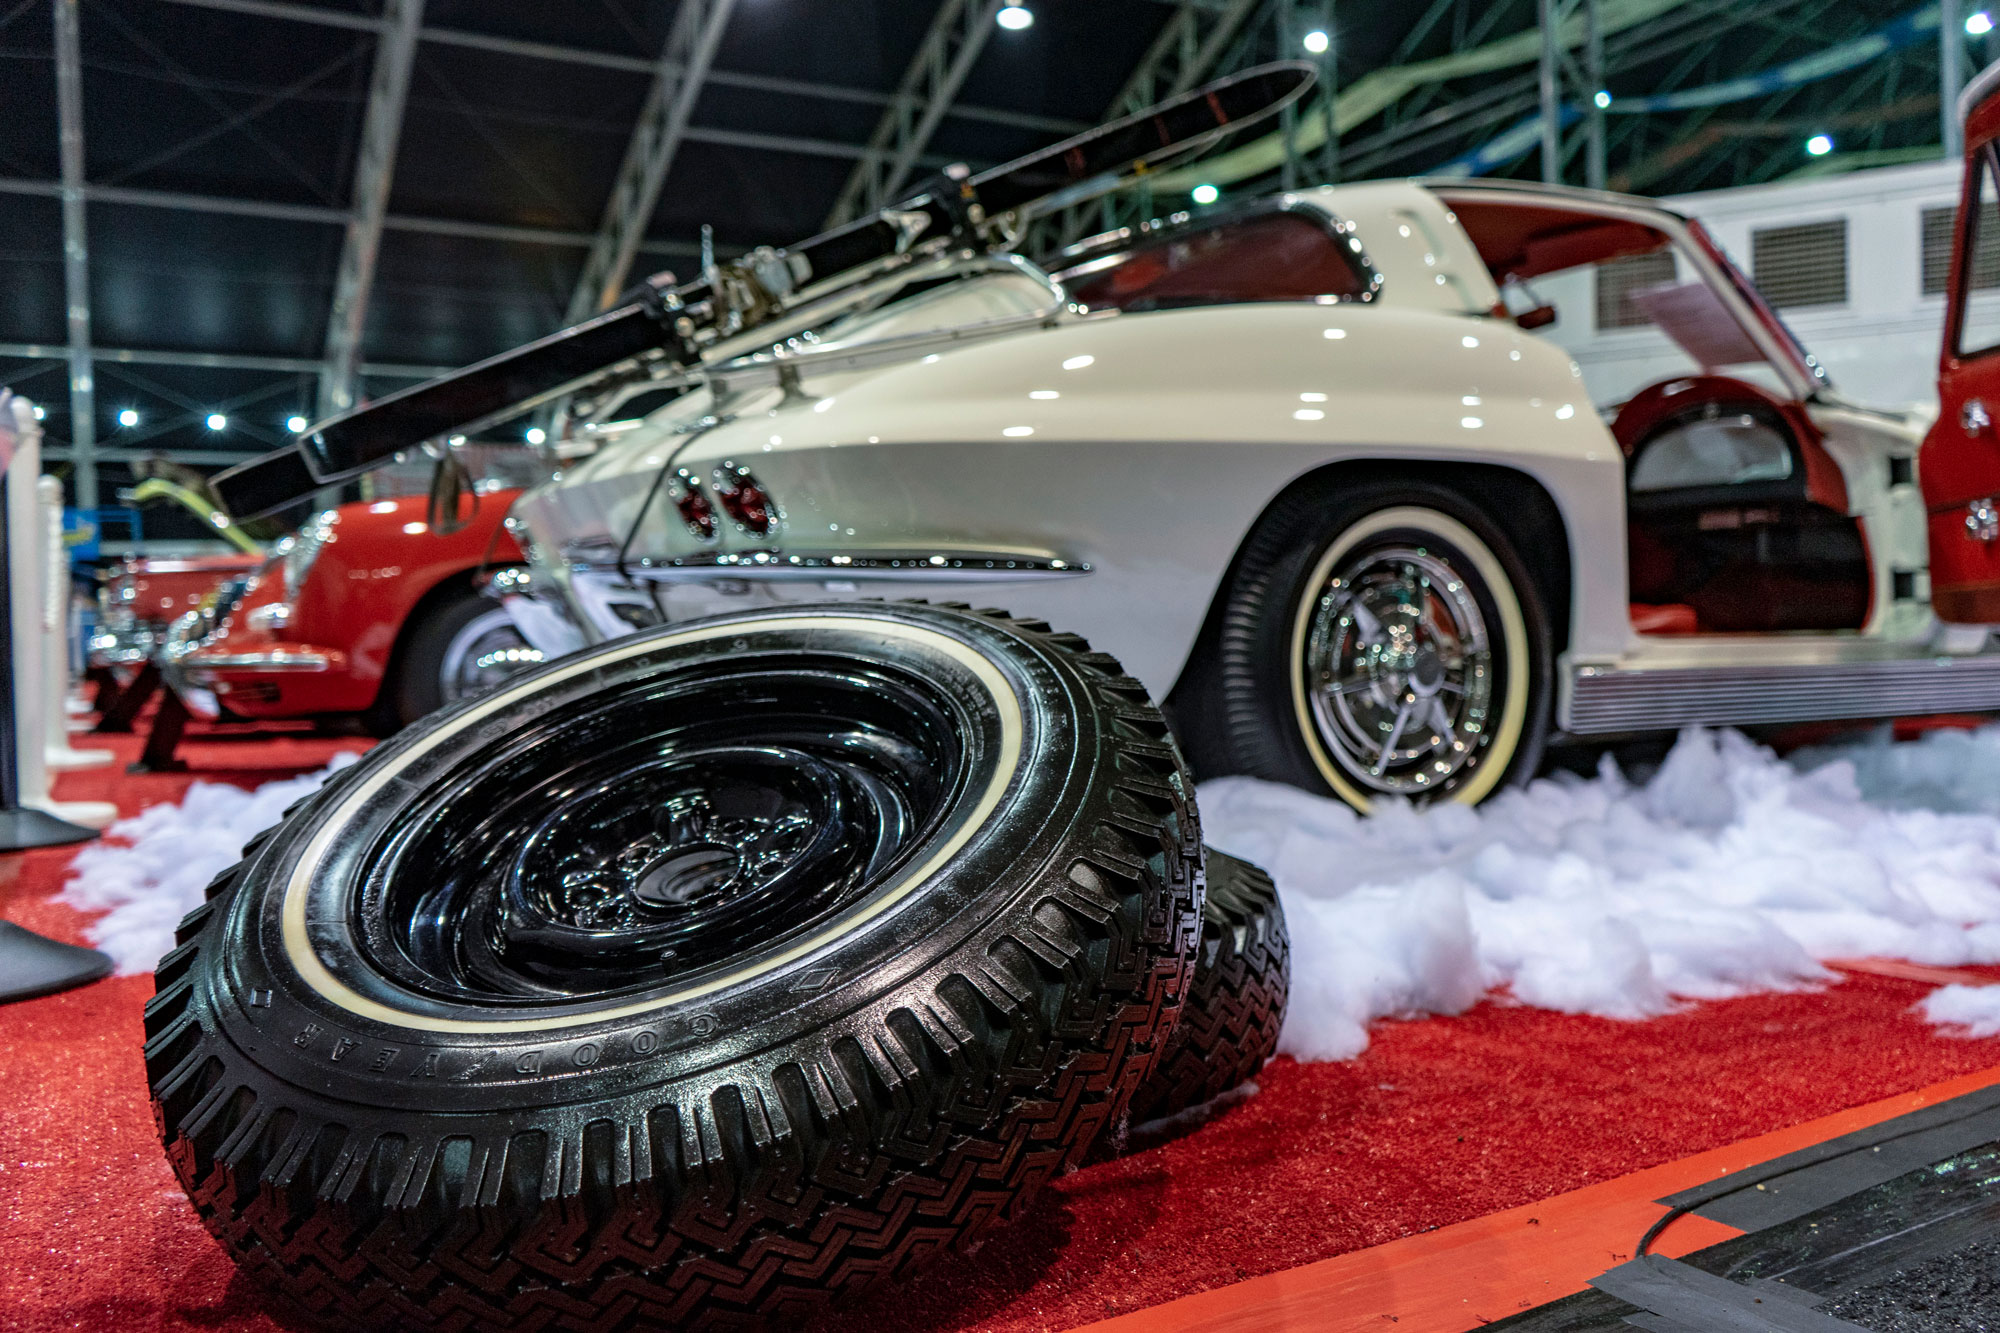 1963 Chevrolet Corvette snow tires